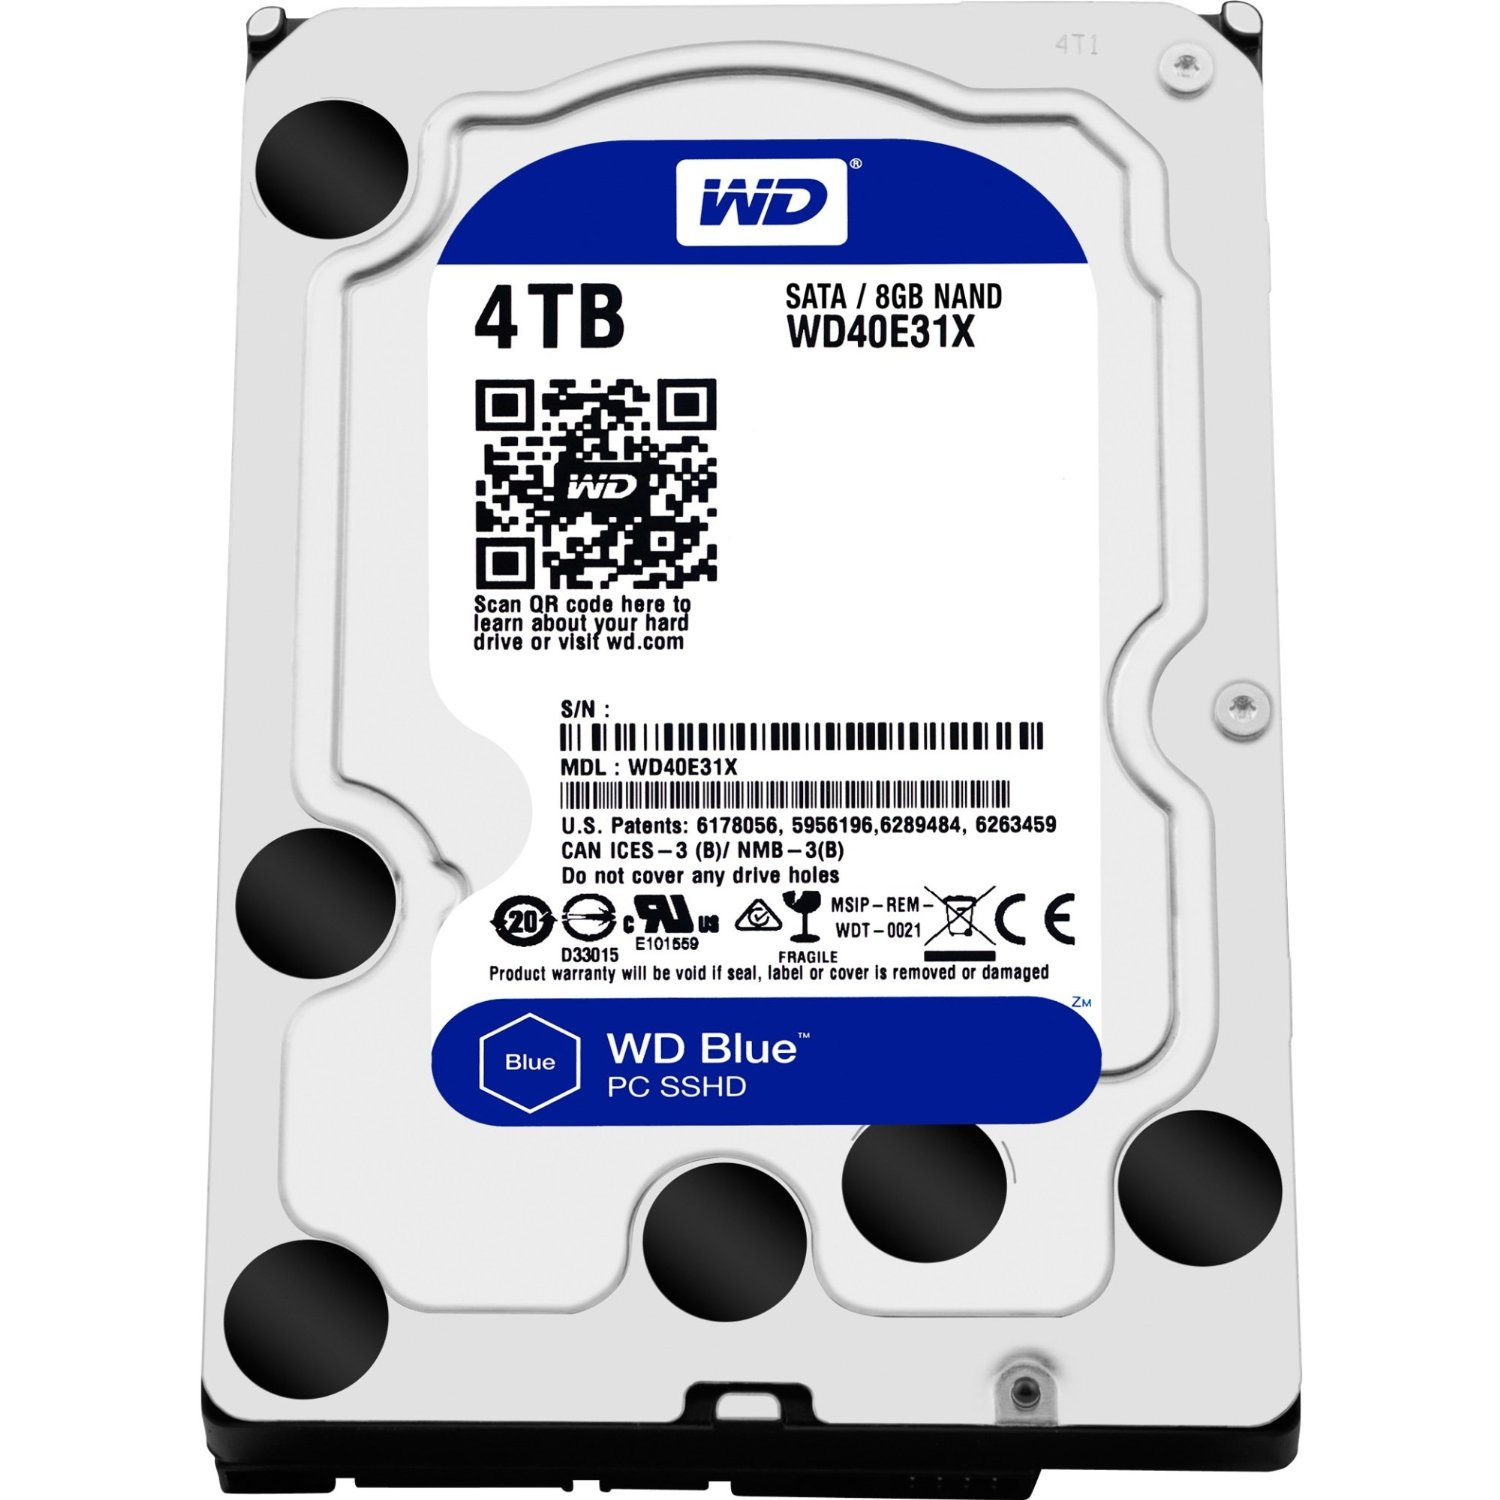 WD Blue SSHD 4TB Desktop Hard Disk Drive - SATA 6 Gb/s 64MB Cache 3 5 Inch  - WD40E31X - Buy Computers Online, Buy Servers, Buy Software Singapore